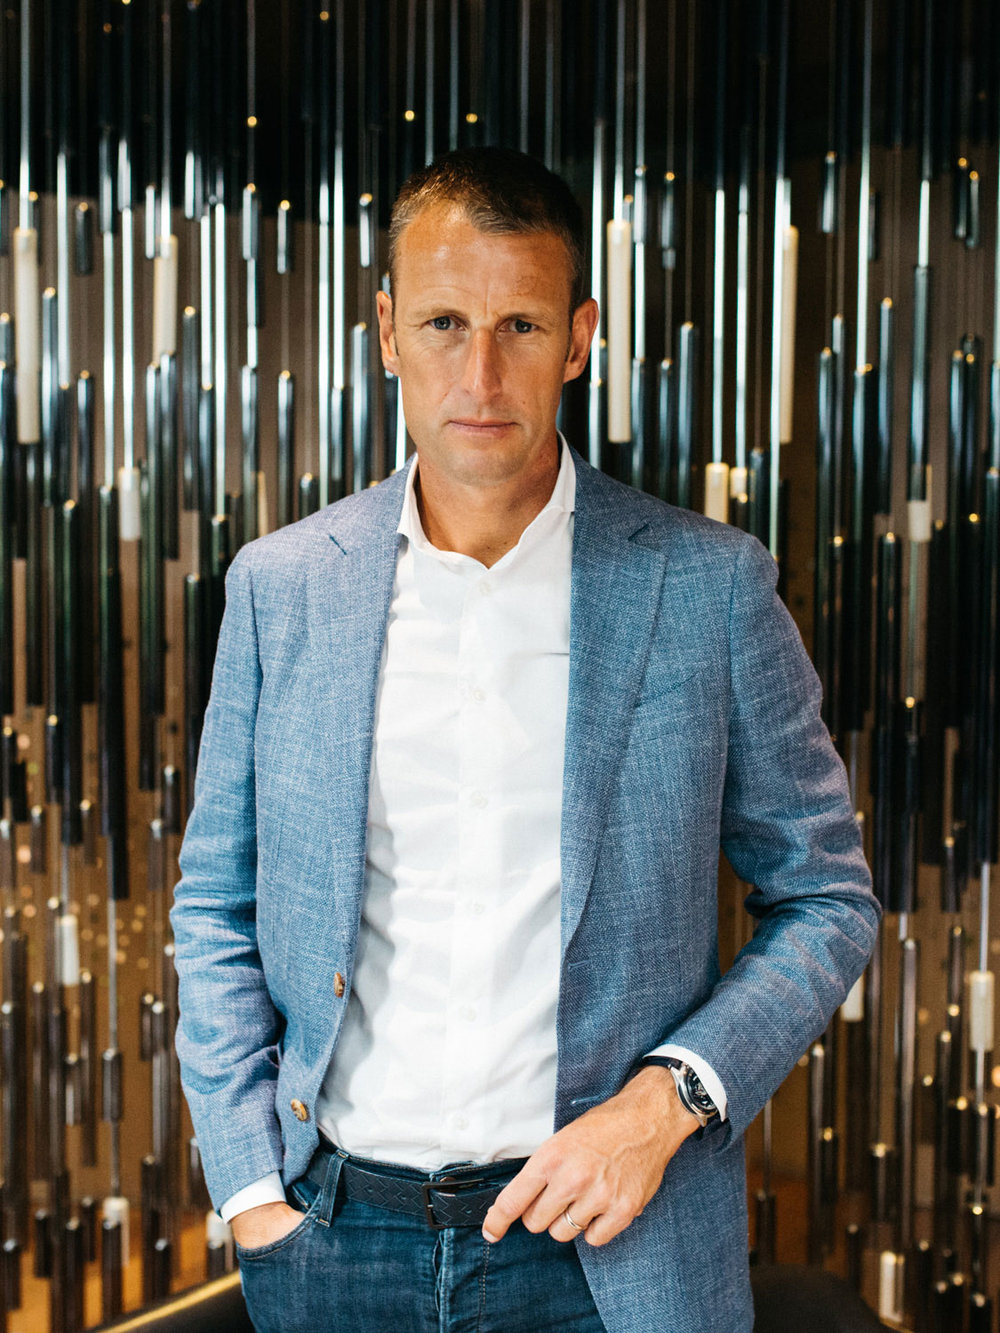 The_Ink_Collective_Creative_Content_Design_Agency_Paris_Sydney_Luxury_Editorial_Kering_Ulysse_Nardin_CEO_Patrick_Pruniaux_CEO_Interview_Luxury_Watches_Timepieces_Swiss_Manufacture_Freak_Out_5.jpg